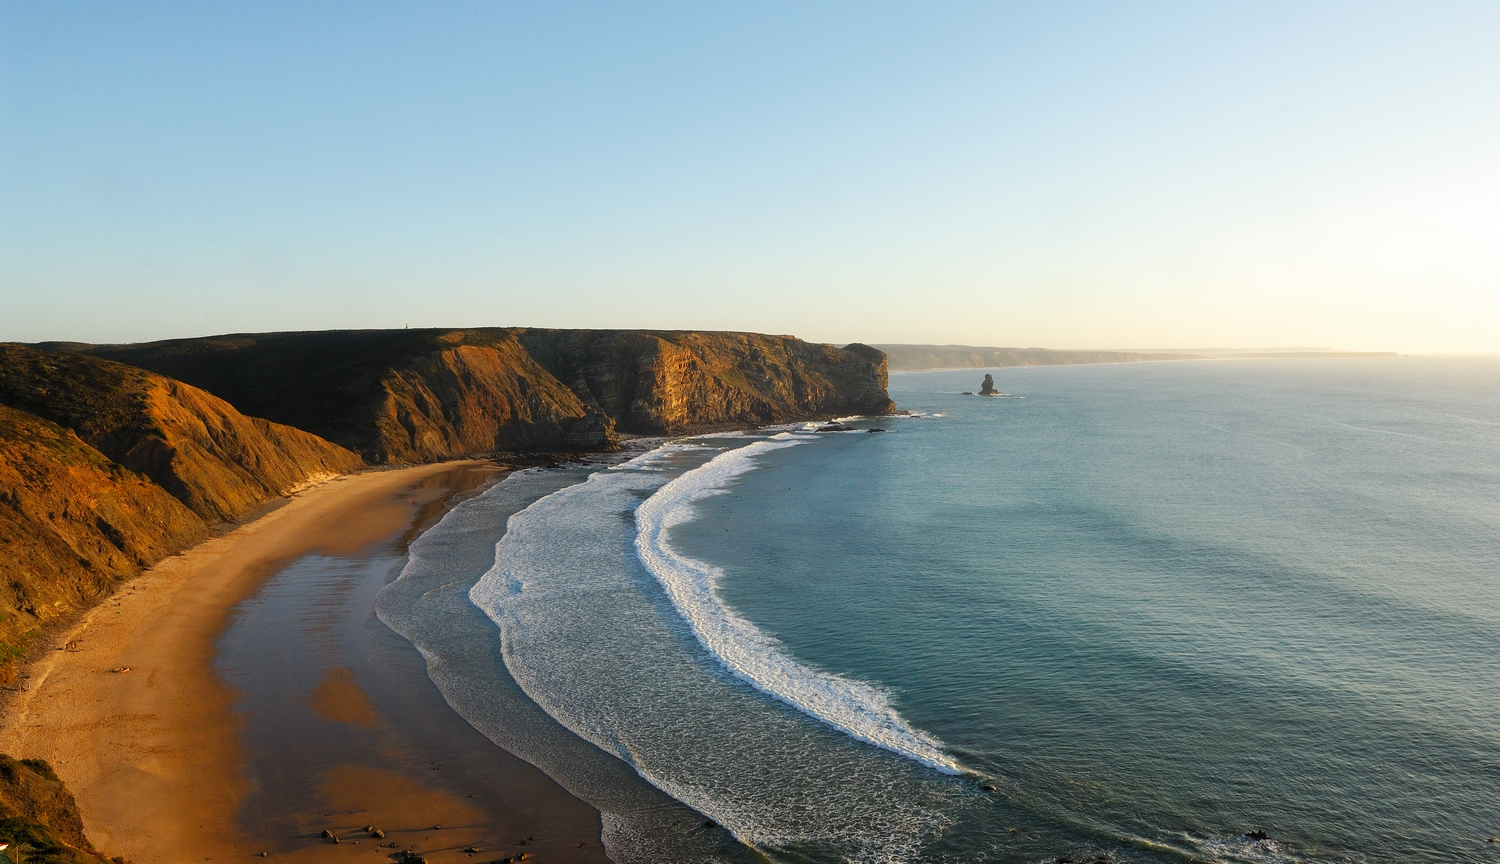 5 Of The Best Surf Spots In Portugal. Surfing Spots. // WarmRental